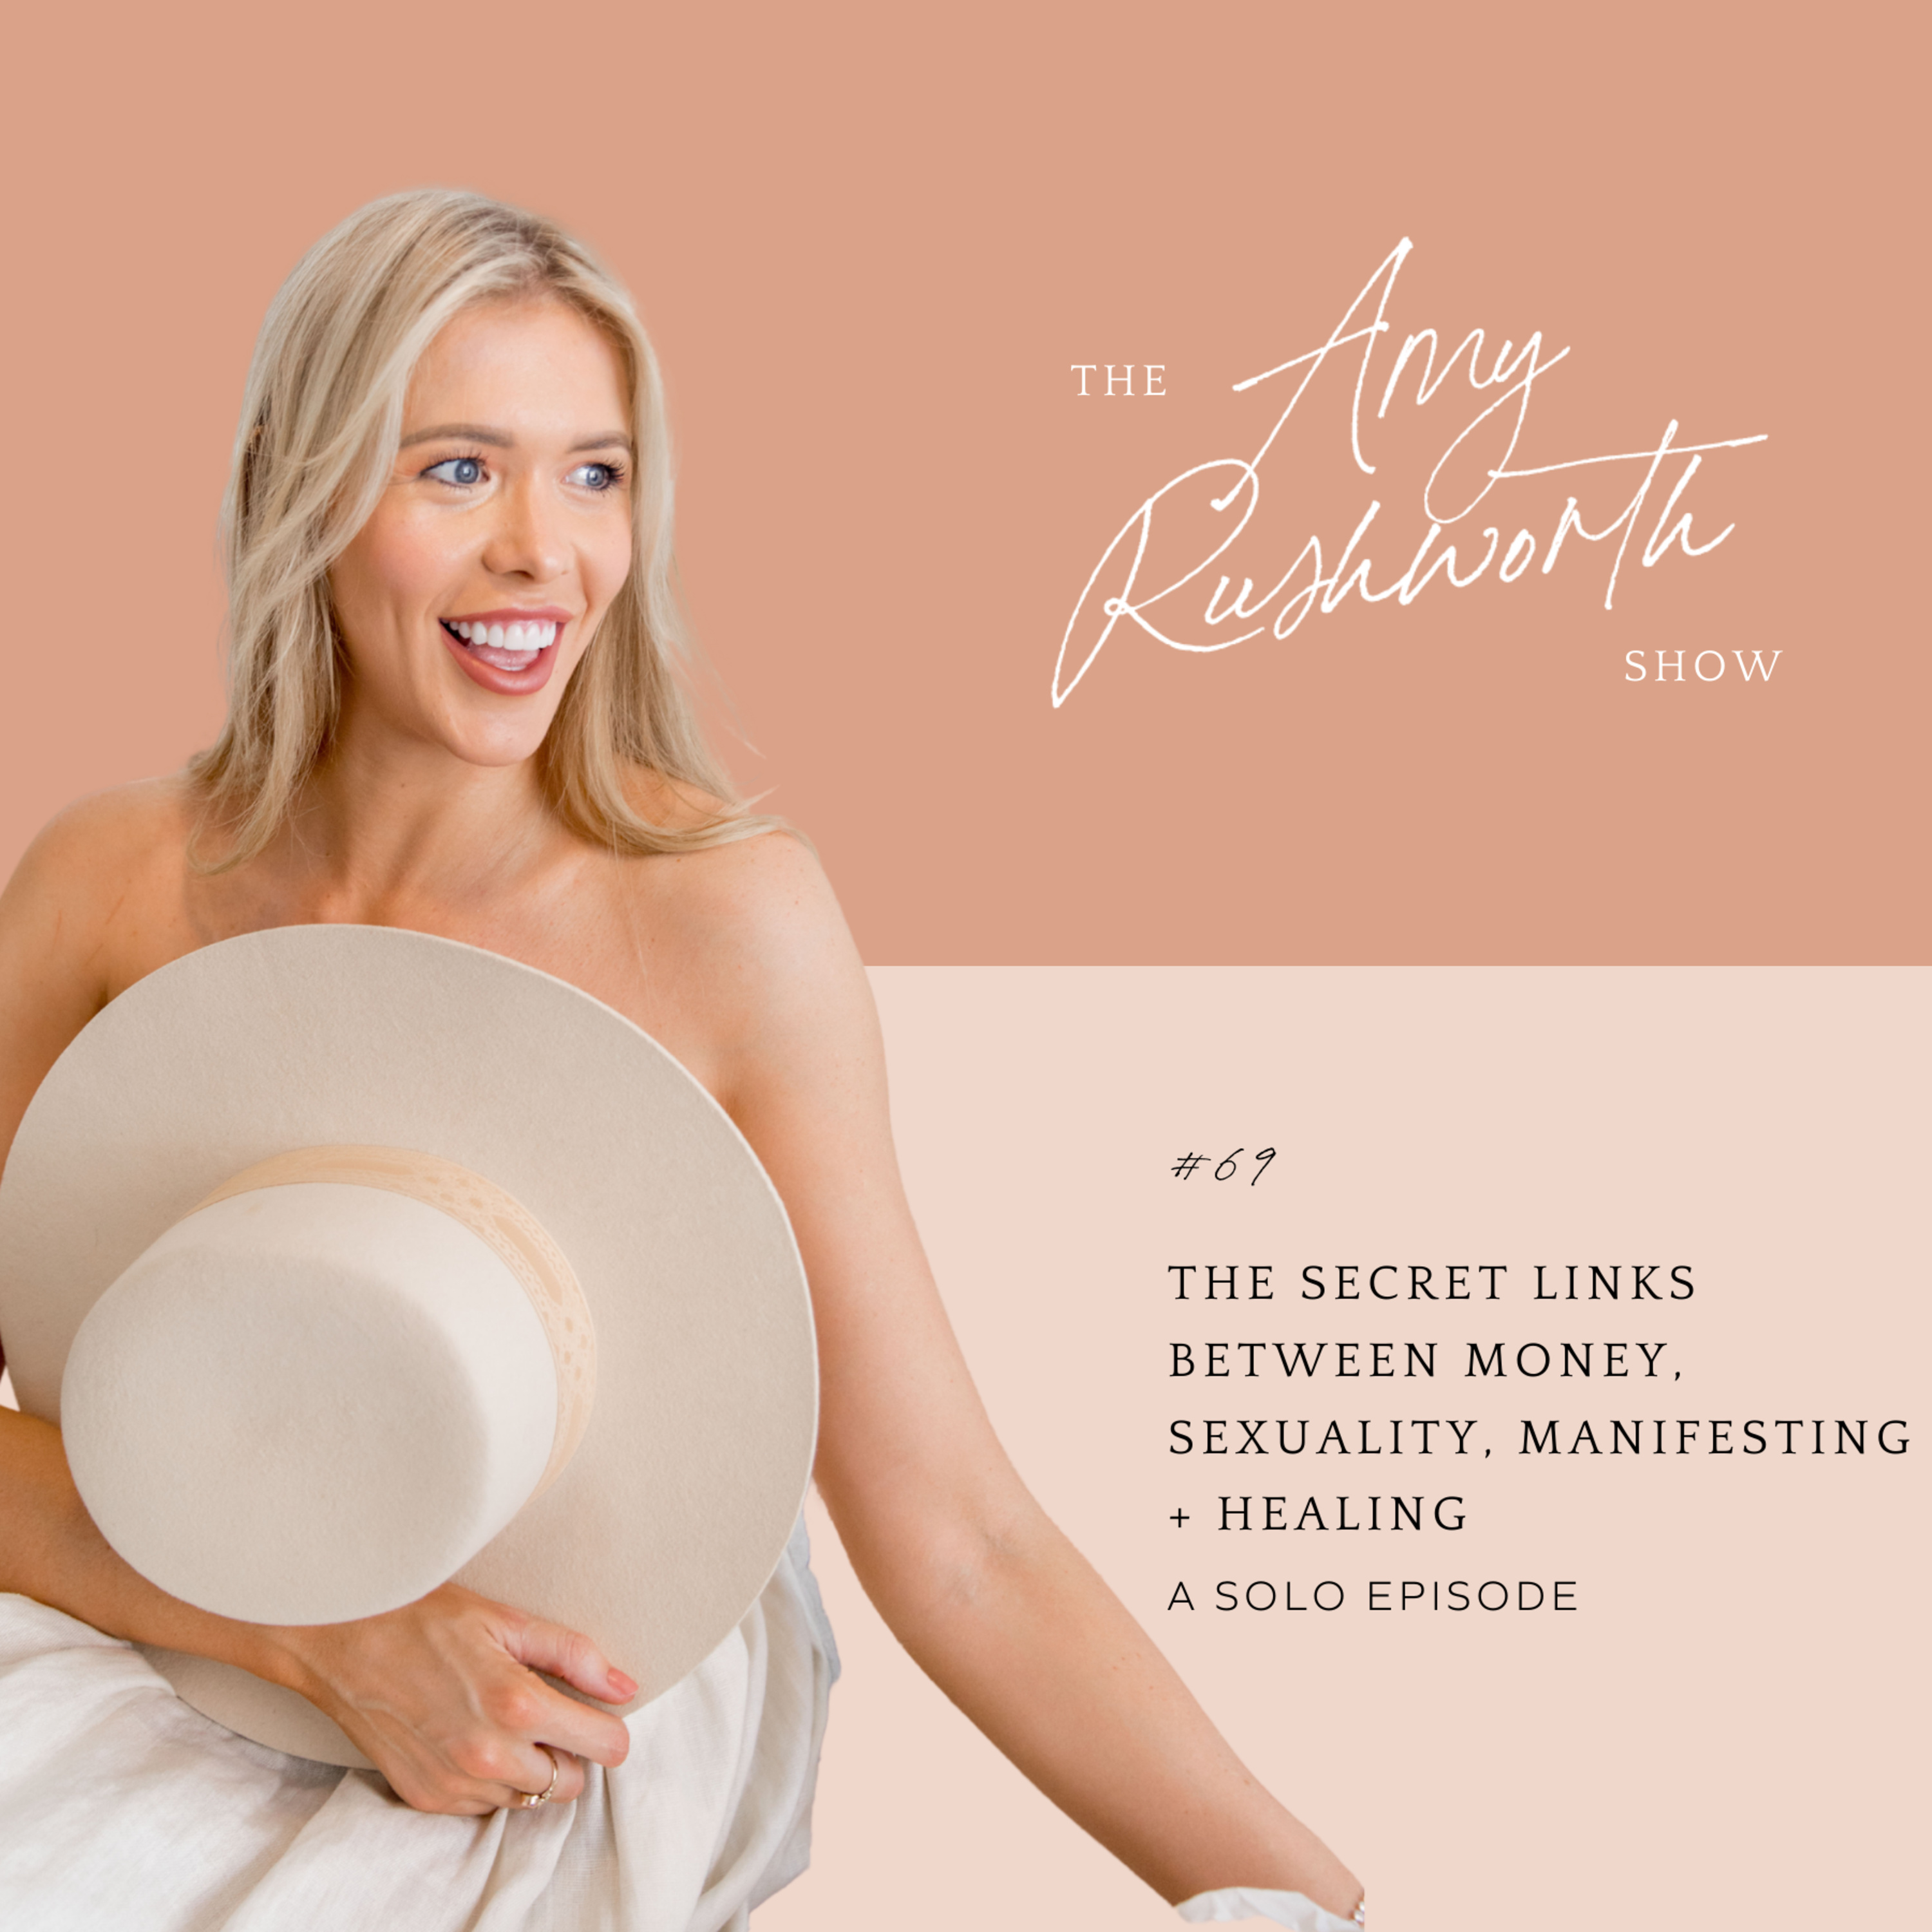 69 - The Secret Links Between Money, Sexuality, Manifesting + Healing (Solo Episode)